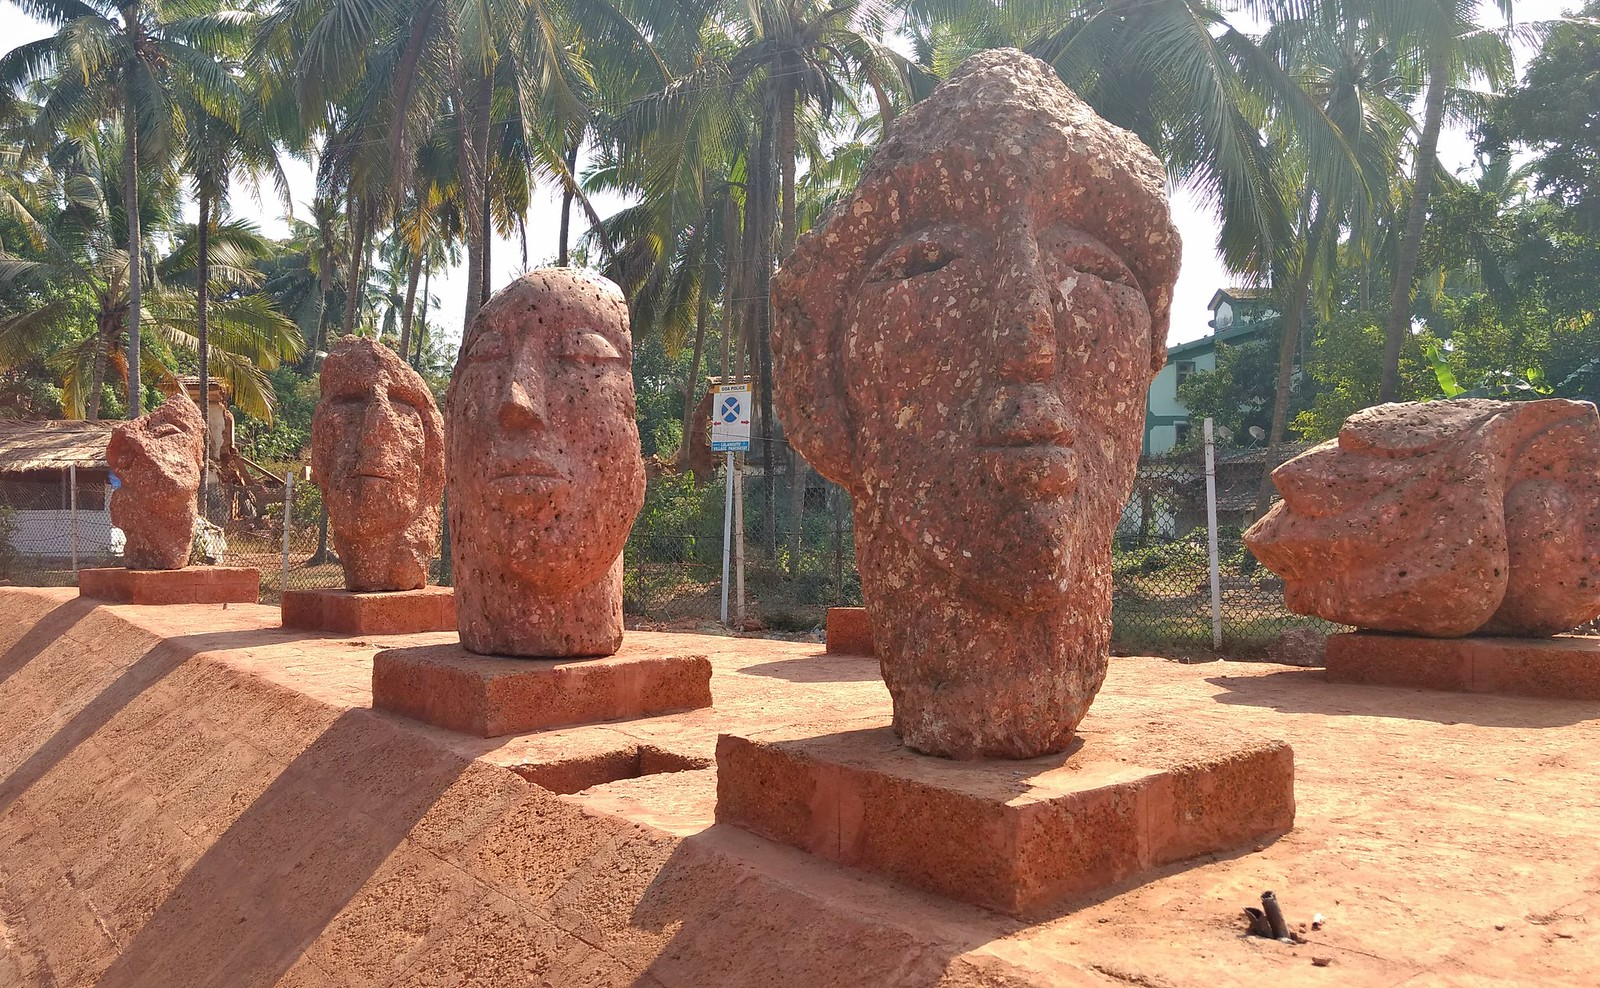 Close up of sculptures